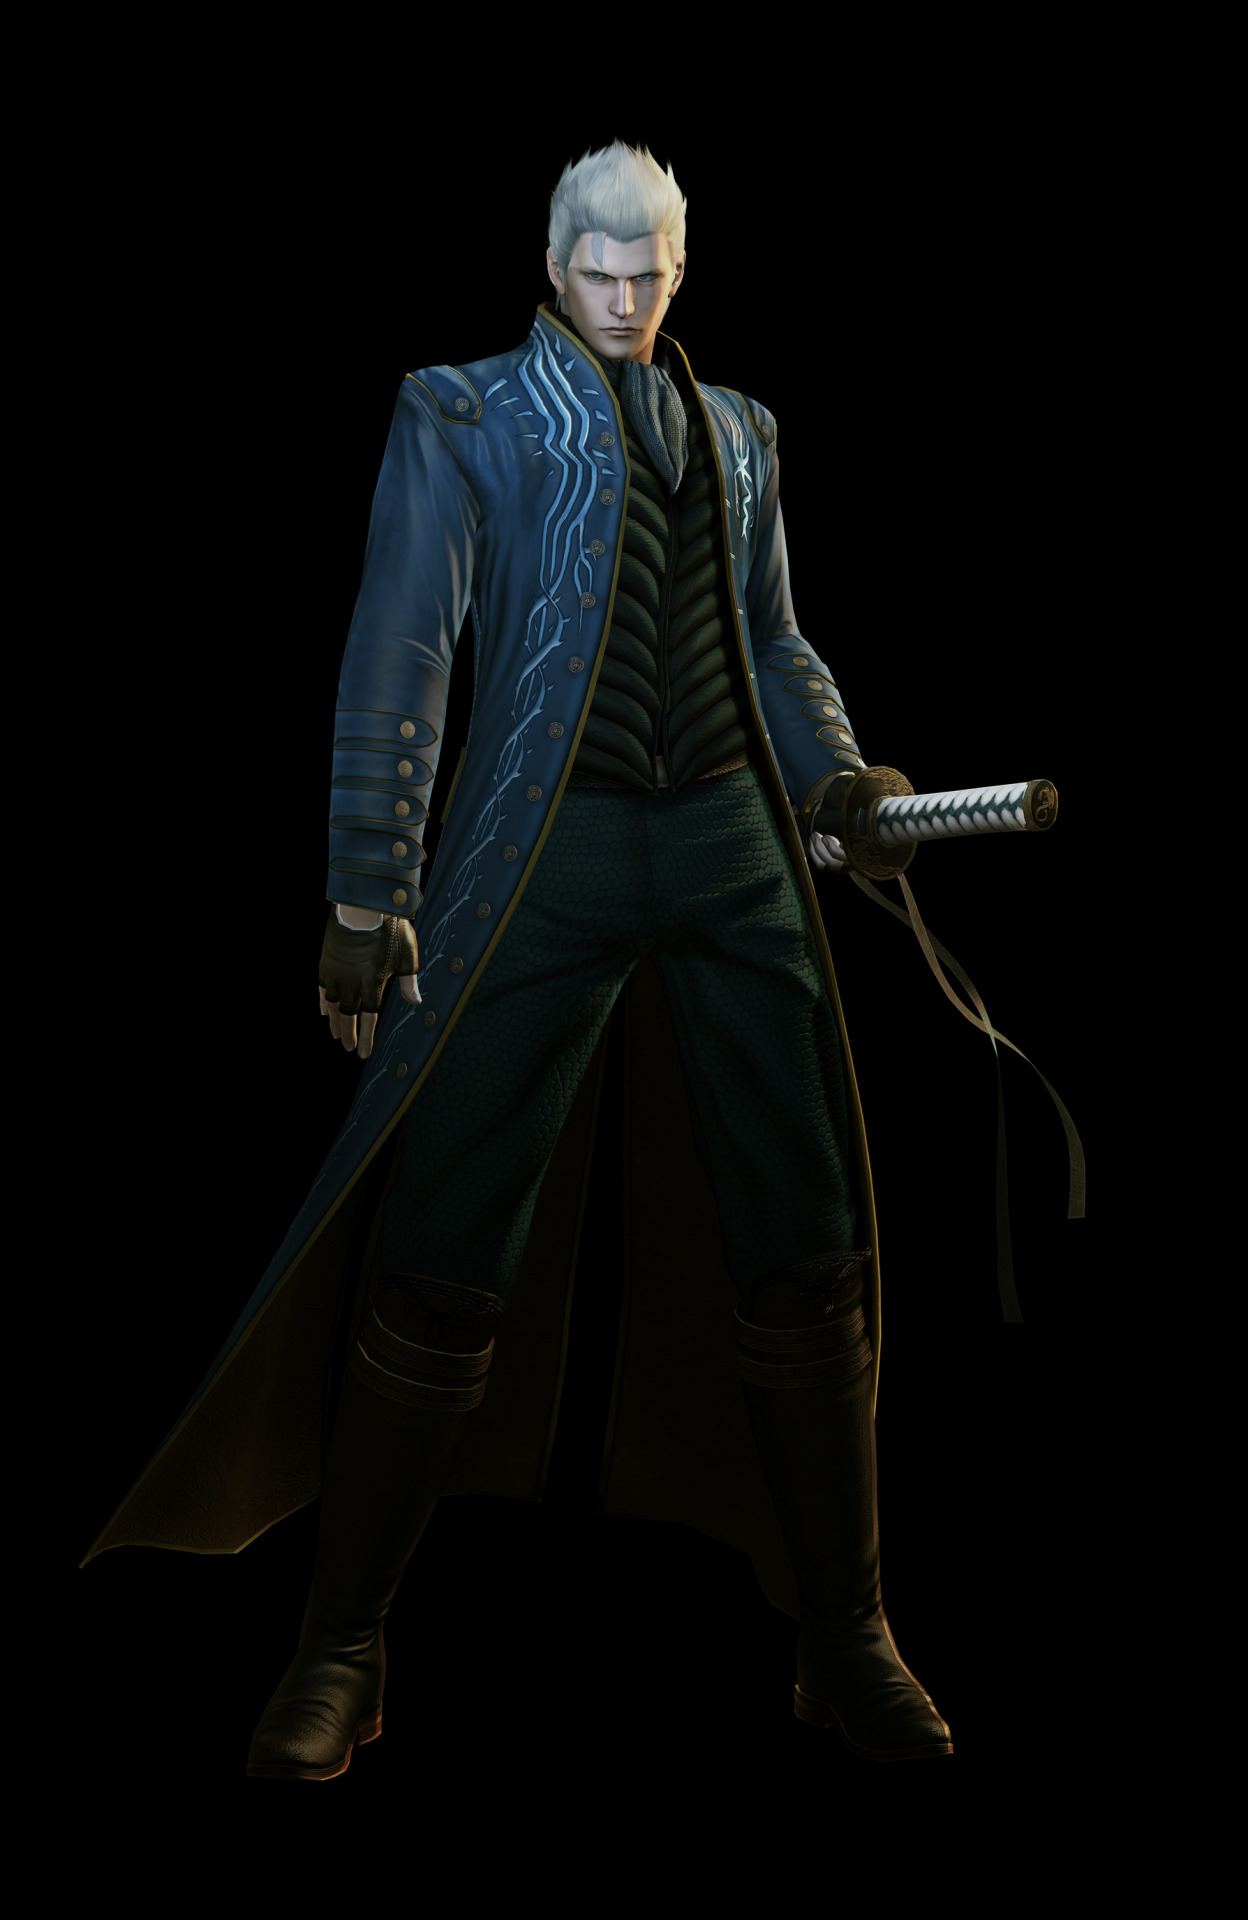 Devil May Cry 4: Special Edition - Vergil by Britt601